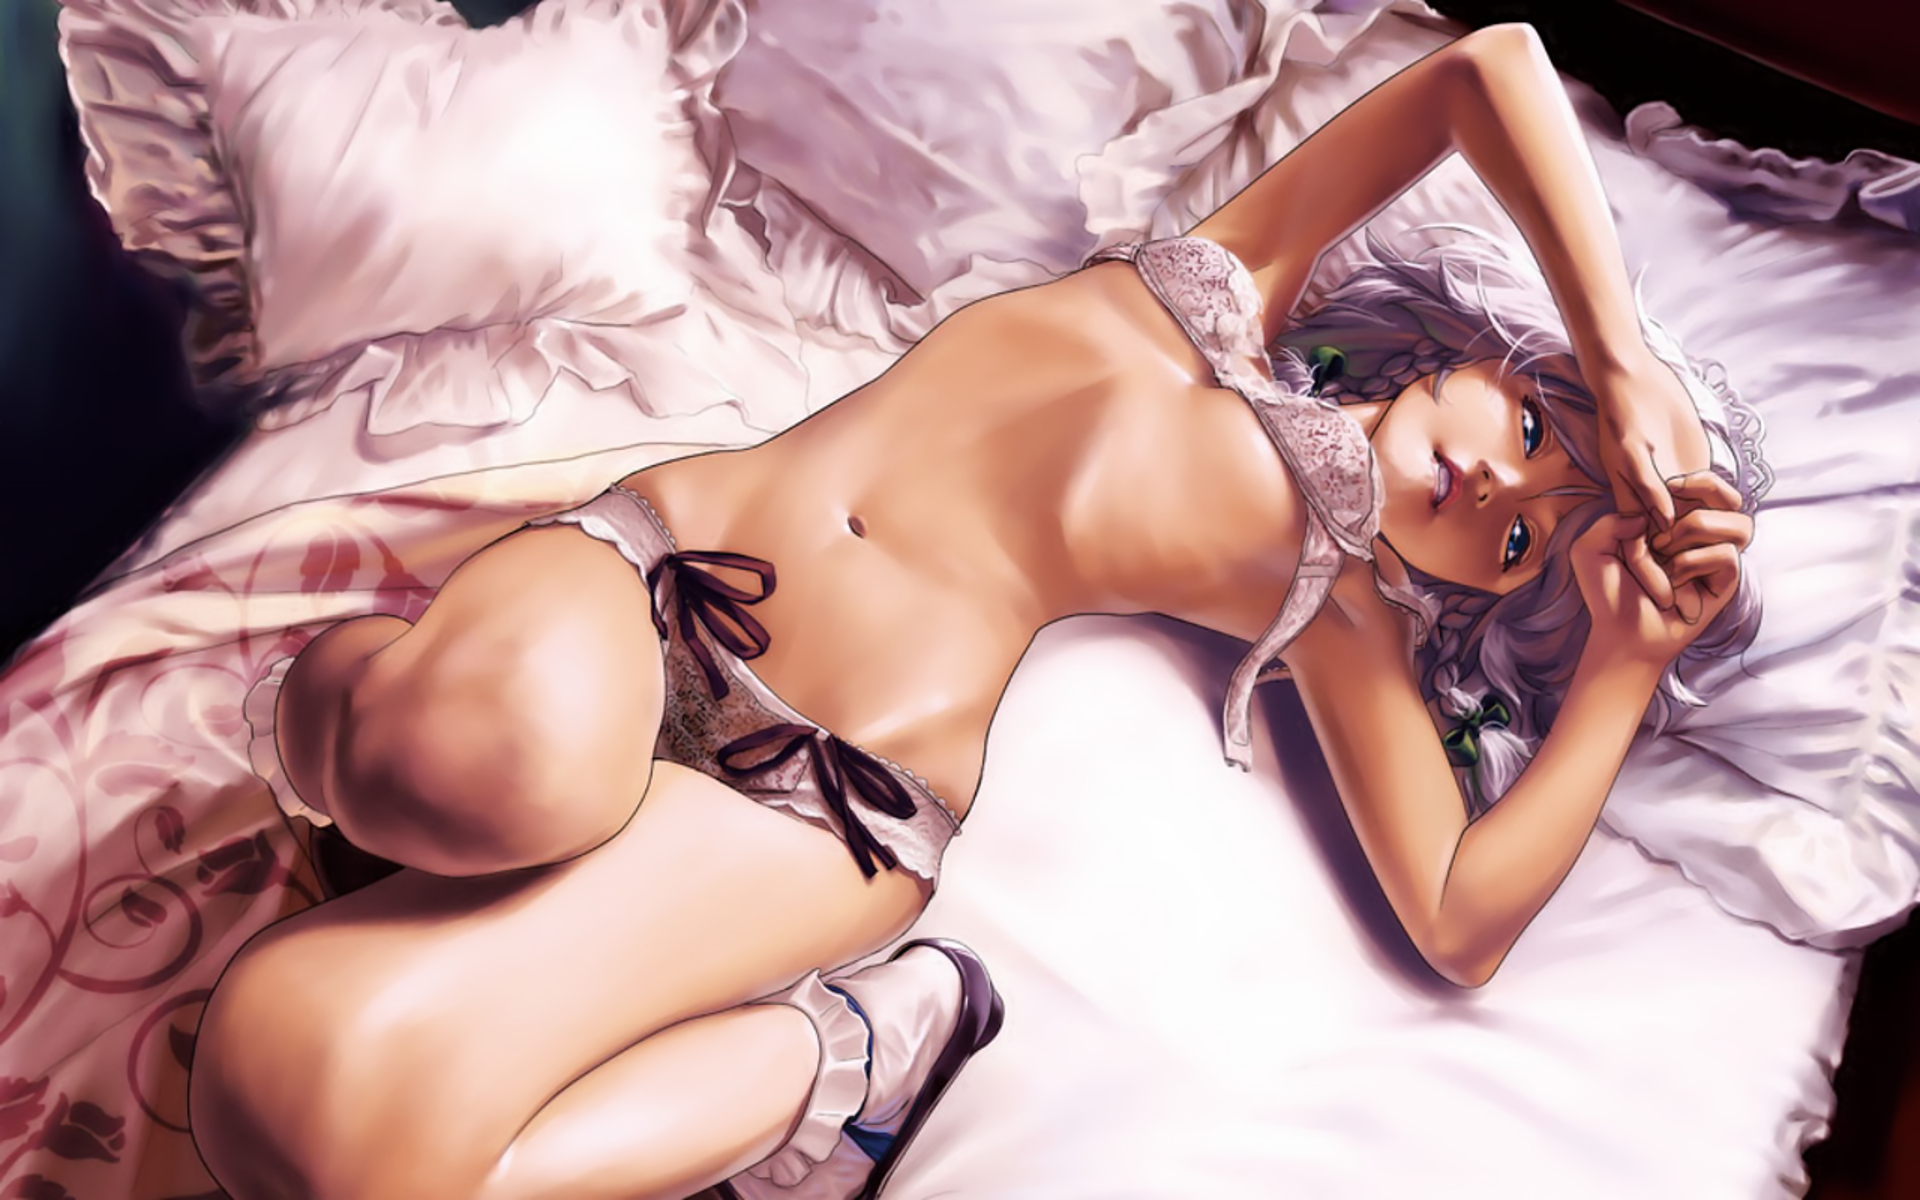 Hot sexy nude animated wallpaper naked gallery